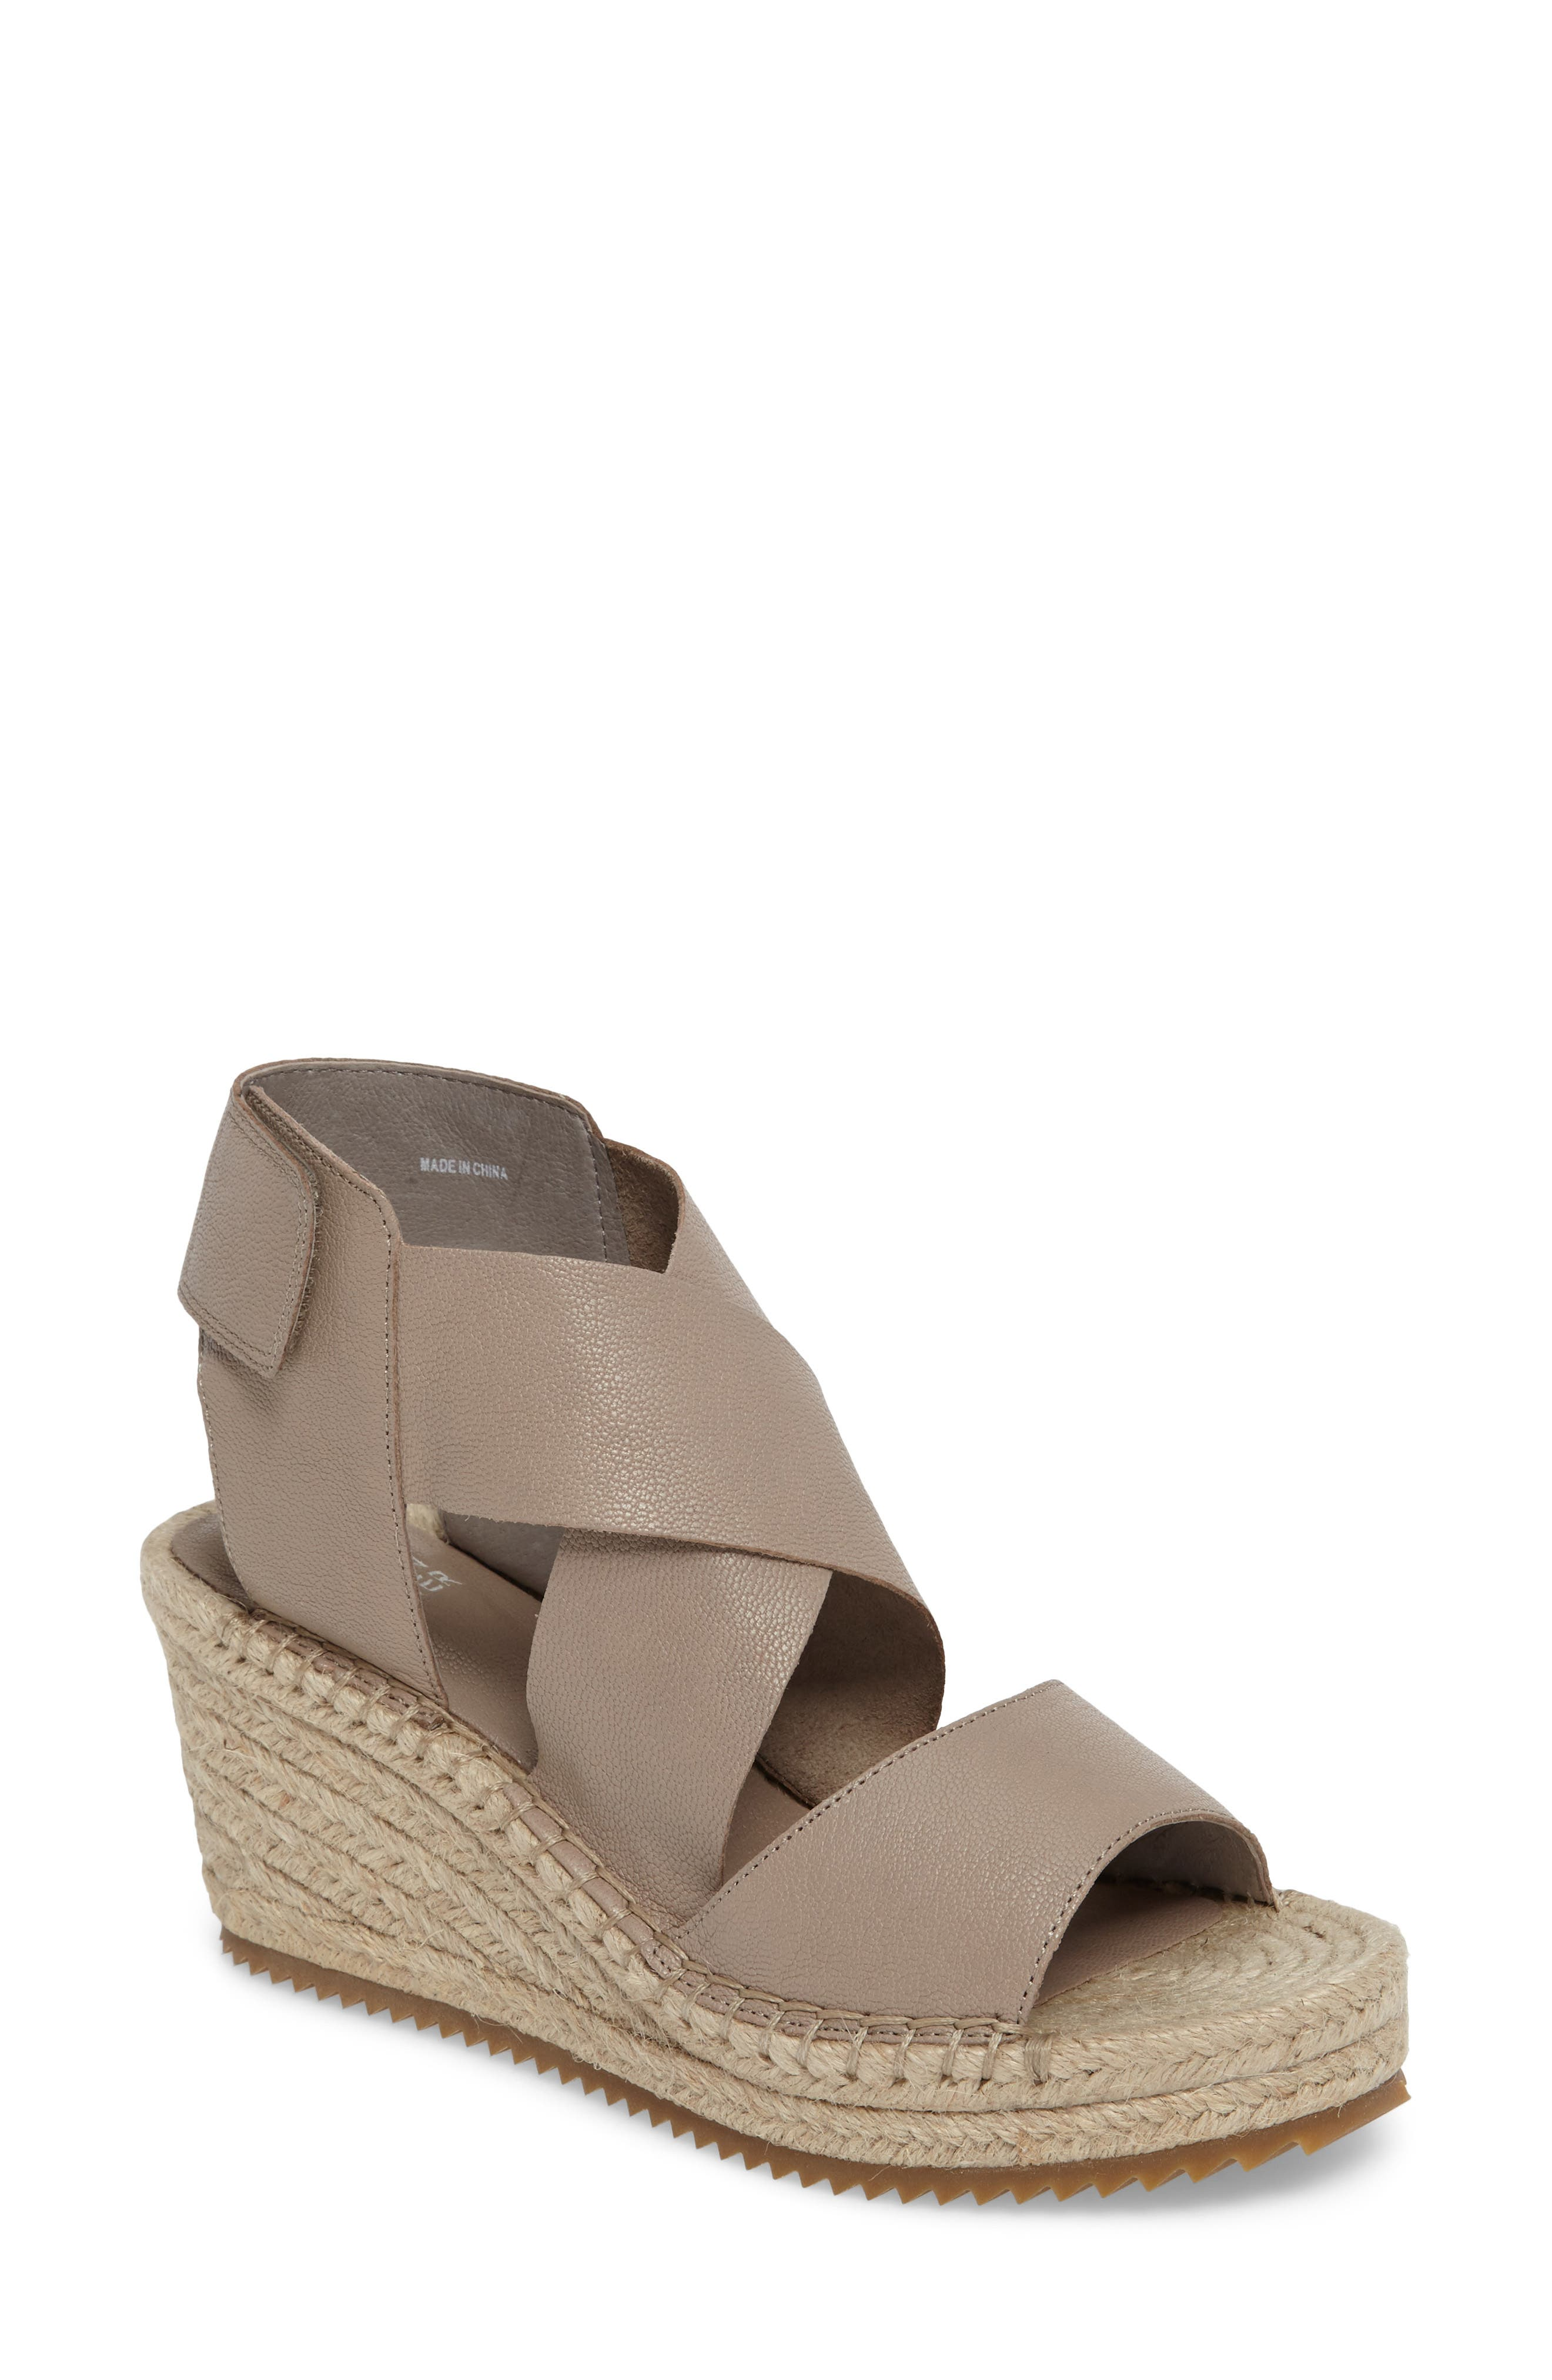 'Willow' Espadrille Wedge Sandal,                             Main thumbnail 1, color,                             Oyster Leather